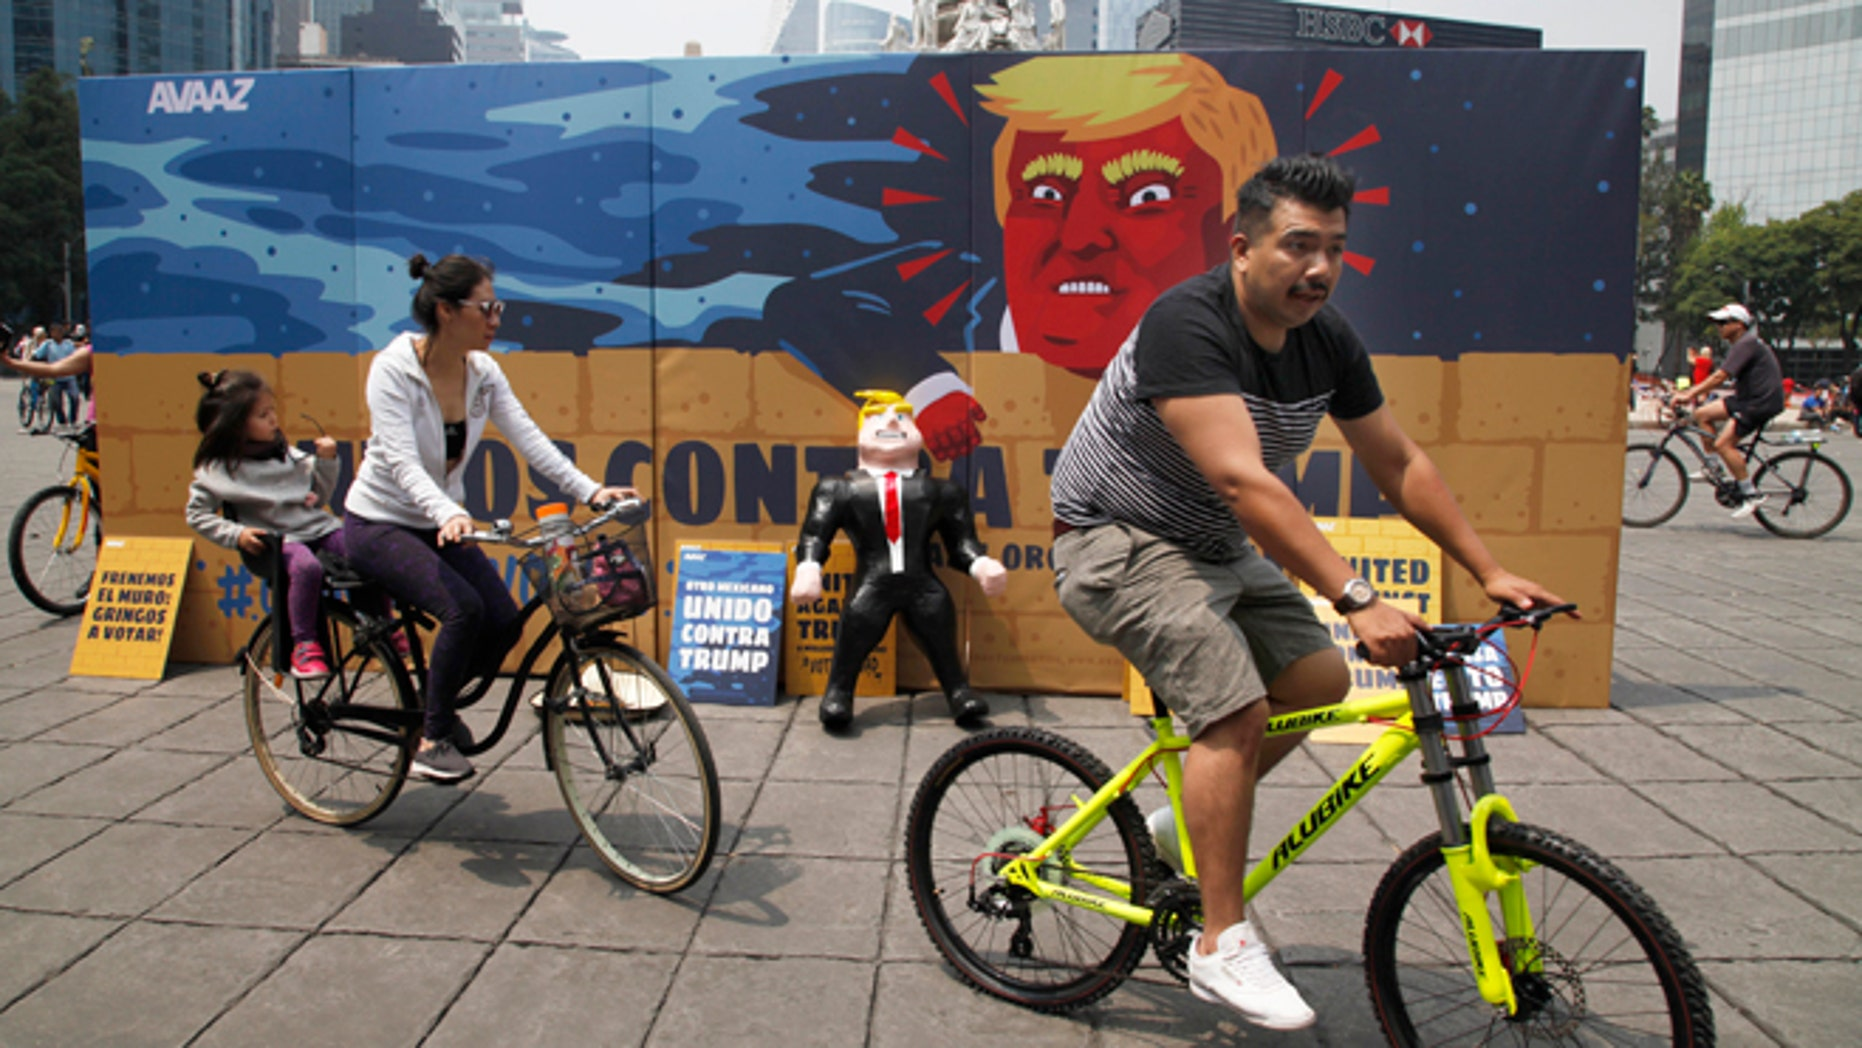 """In this Sunday, Sept. 25, 2016 photo, a family of three ride their bicycles past a piñata depicting U.S. Republican presidential nominee Donald Trump propped against a cardboard mural wall with a message in Spanish that reads; """"United against Trump"""" at the Angel of  Independence monument in Mexico City.  The head of Mexicoâs central bank told the Radio Formula network Friday, Sept. 30, 2016, that a Trump presidency âwould be a hurricane and a particularly intense one if he fulfills what he has been saying in his campaign.â  (AP Photo/Marco Ugarte)"""